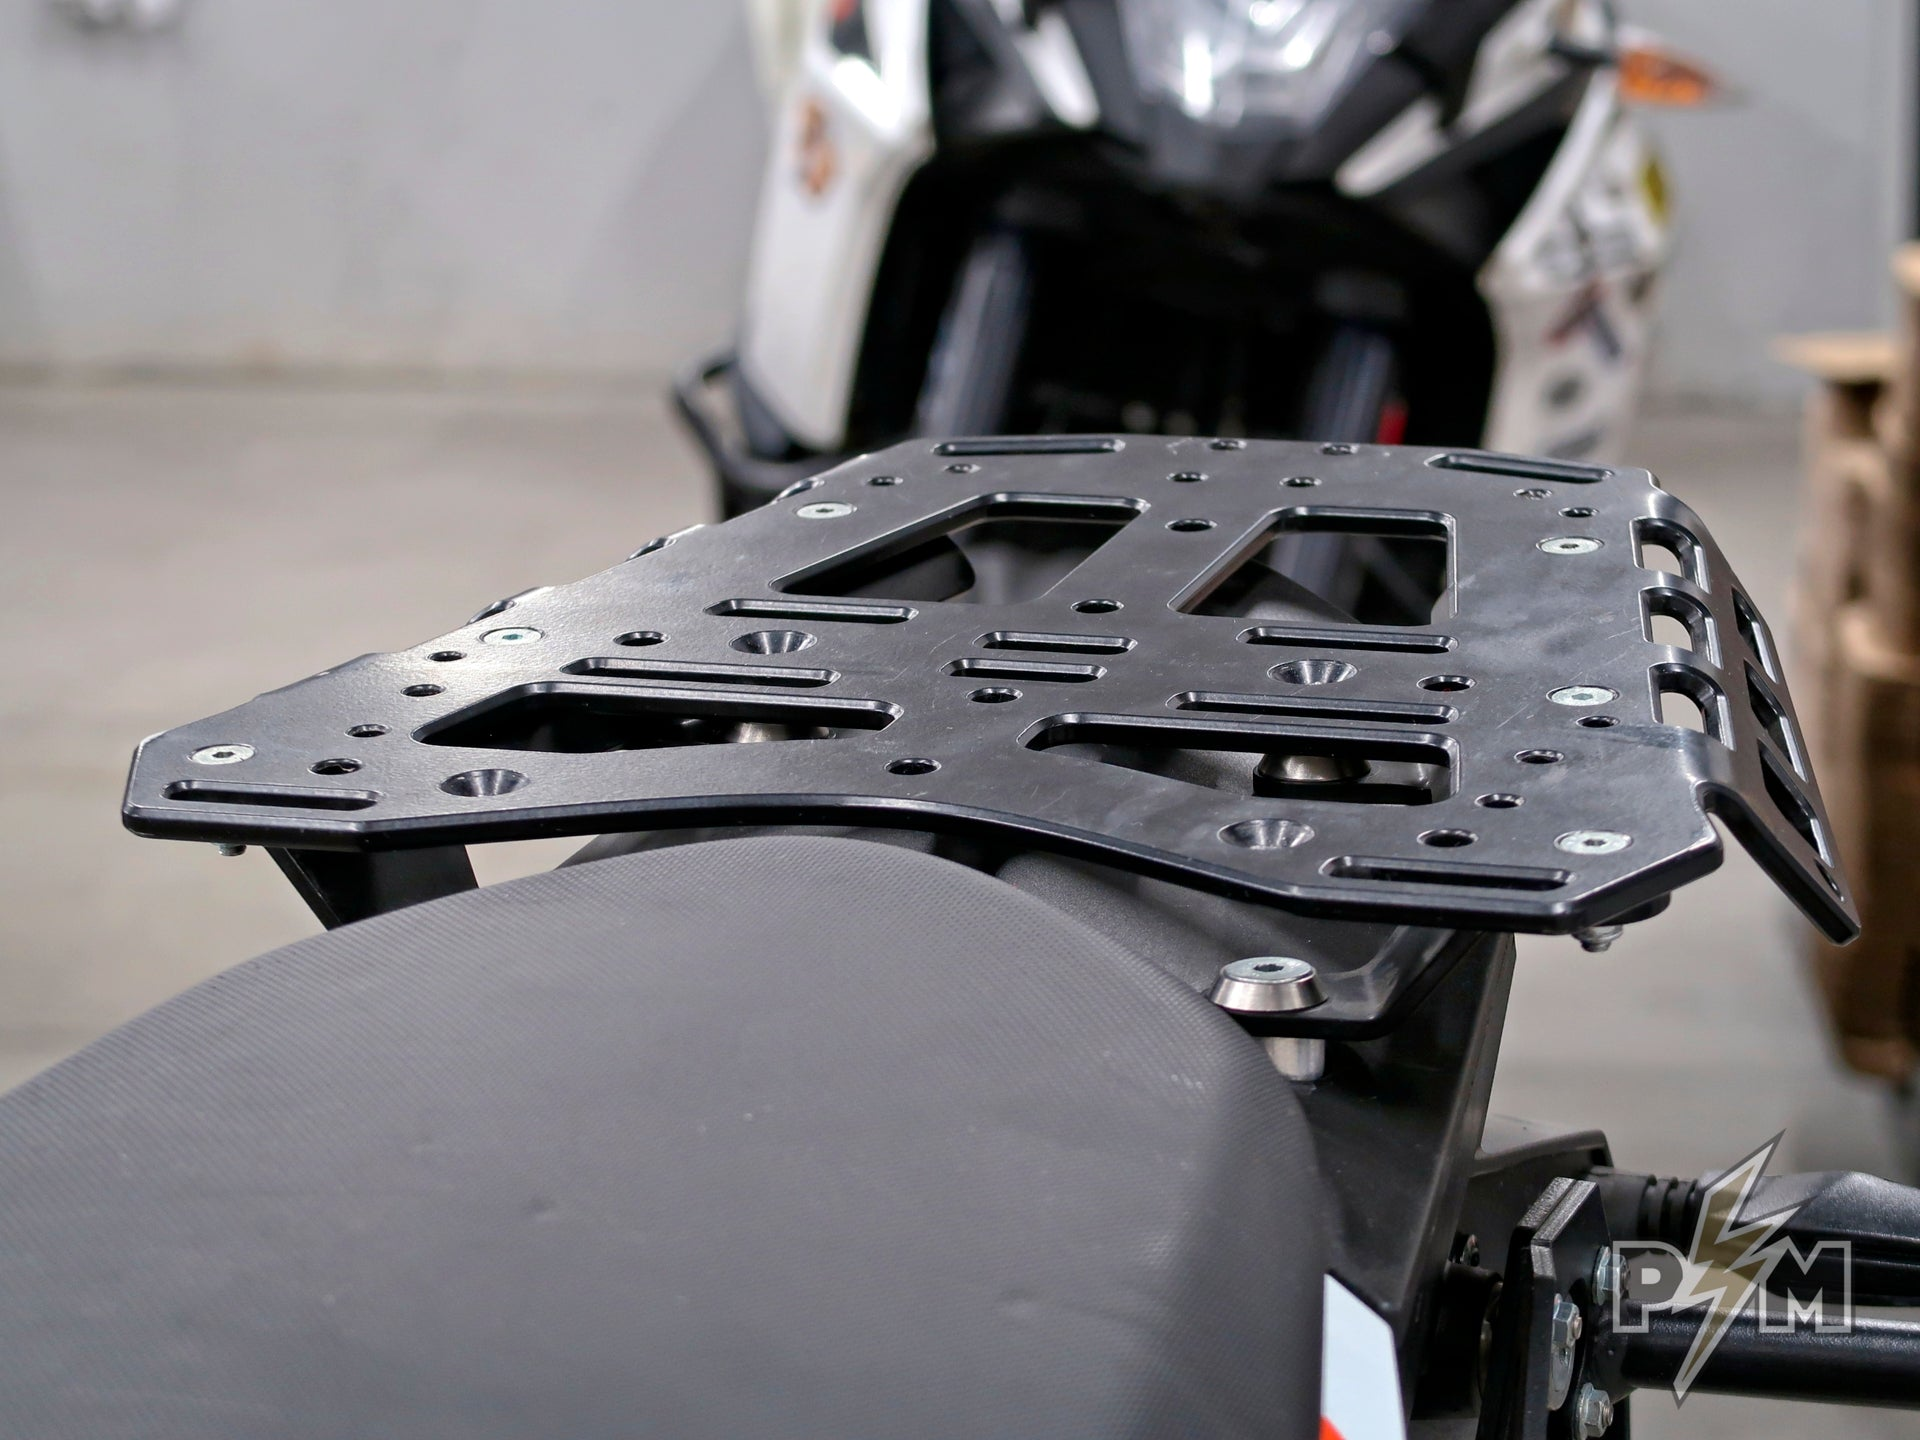 Subplate for KTM 1X90 Top luggage rack